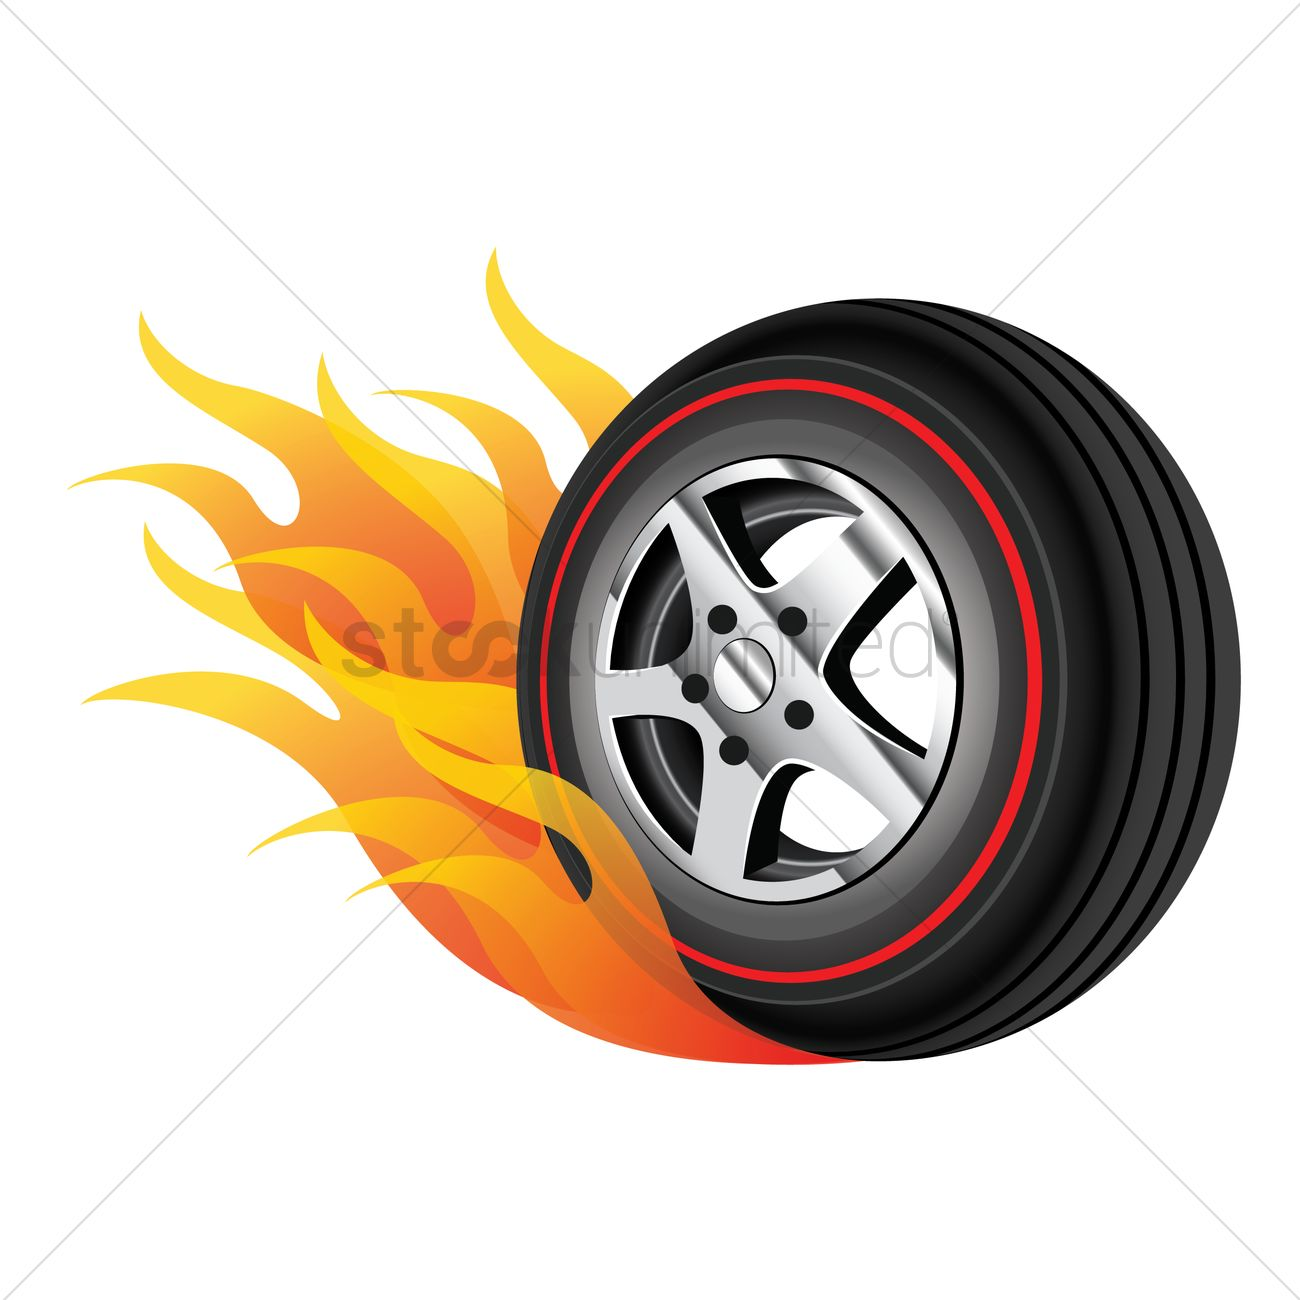 Racing Car Hd Wallpaper Free Download Tyre On Fire Vector Image 1444797 Stockunlimited